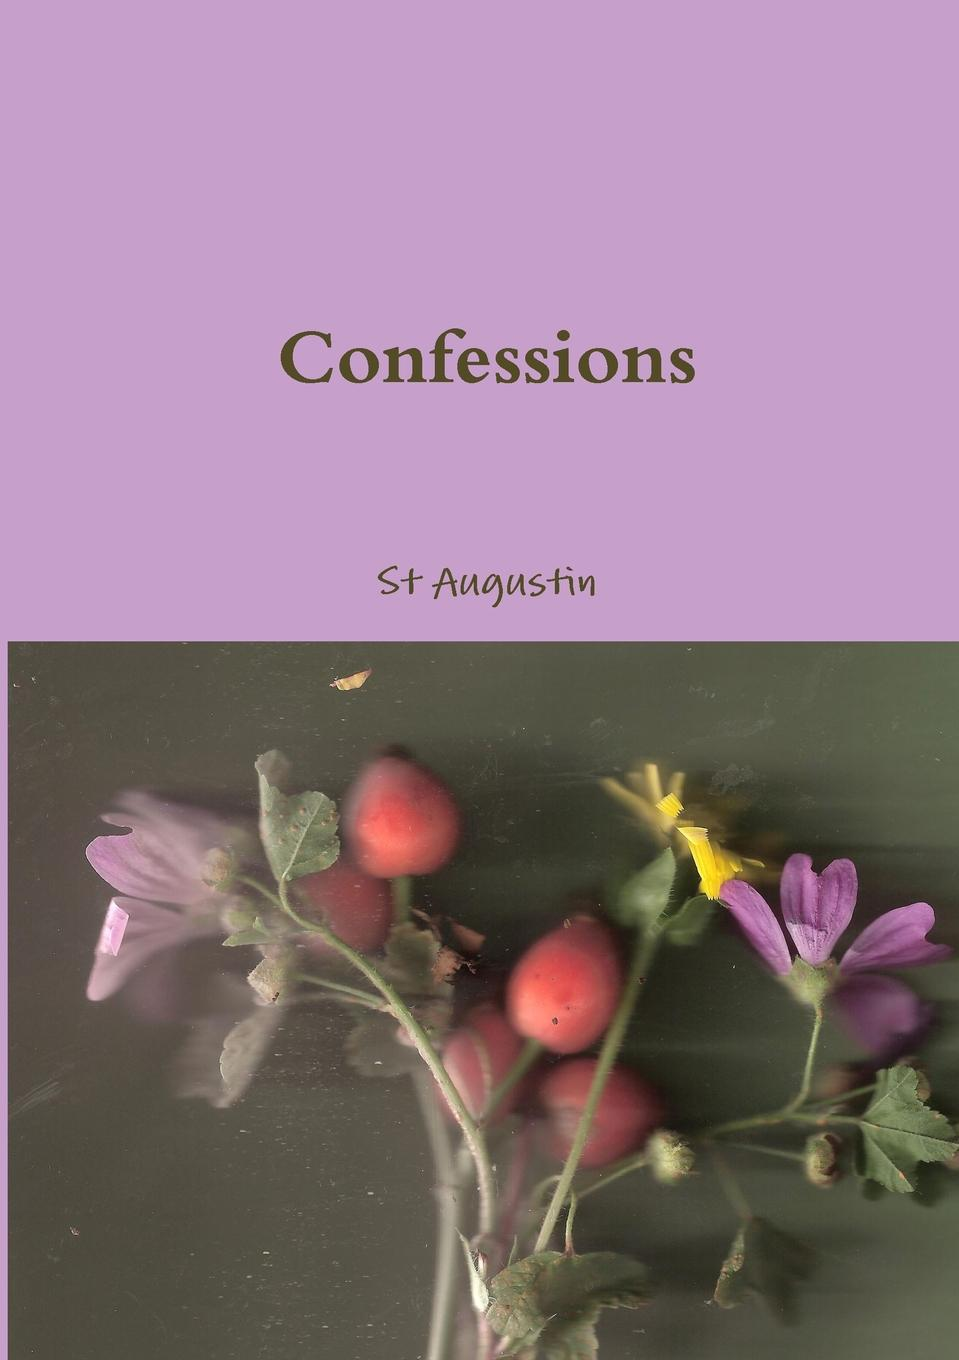 St Agustinr Confessions confessions of an ex doofus itchy footed mutha